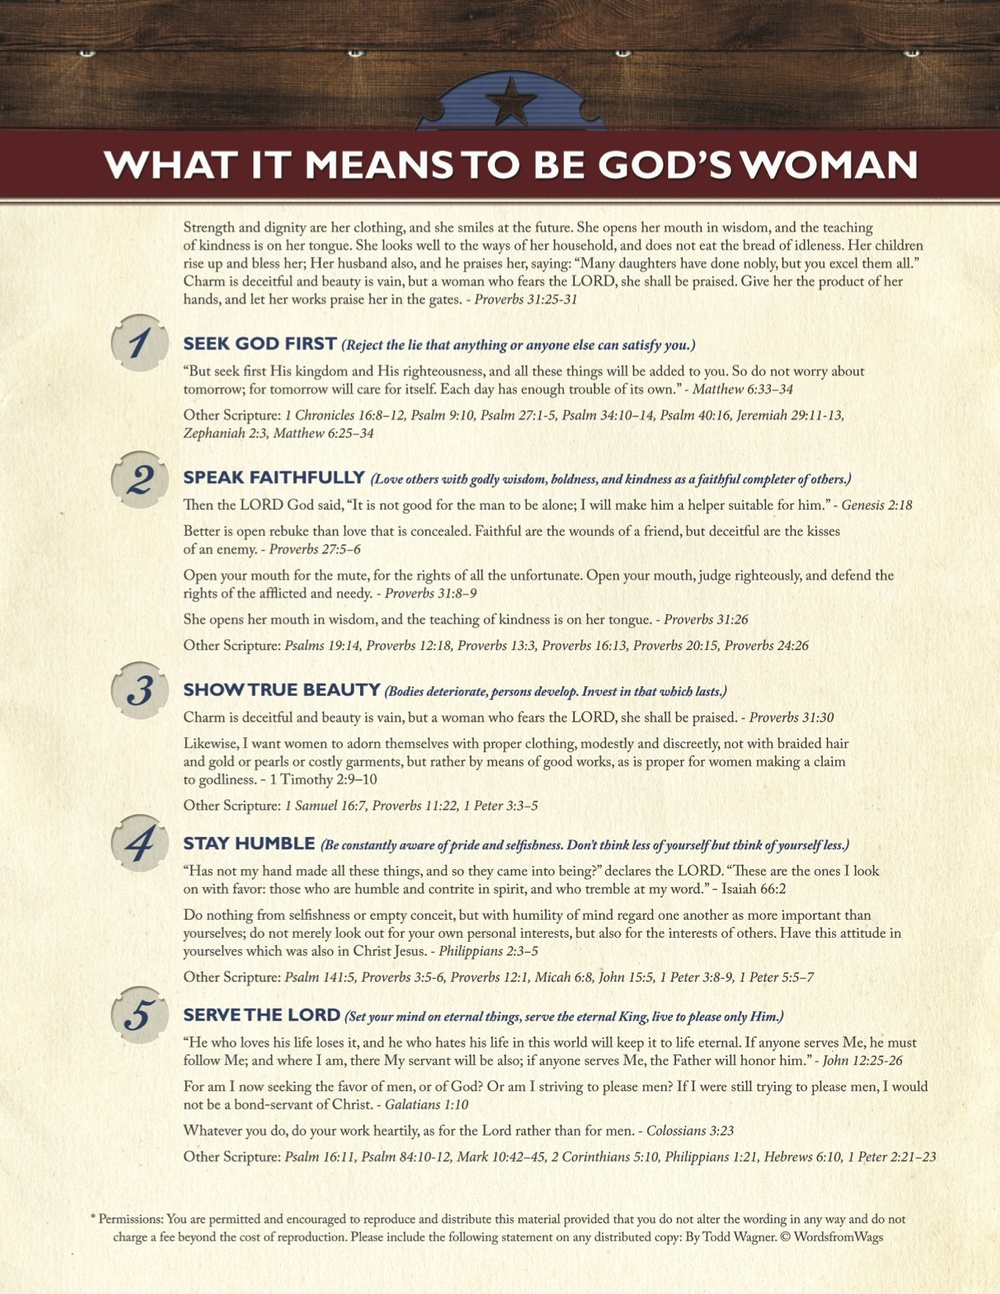 5 Characteristics of a Godly Women